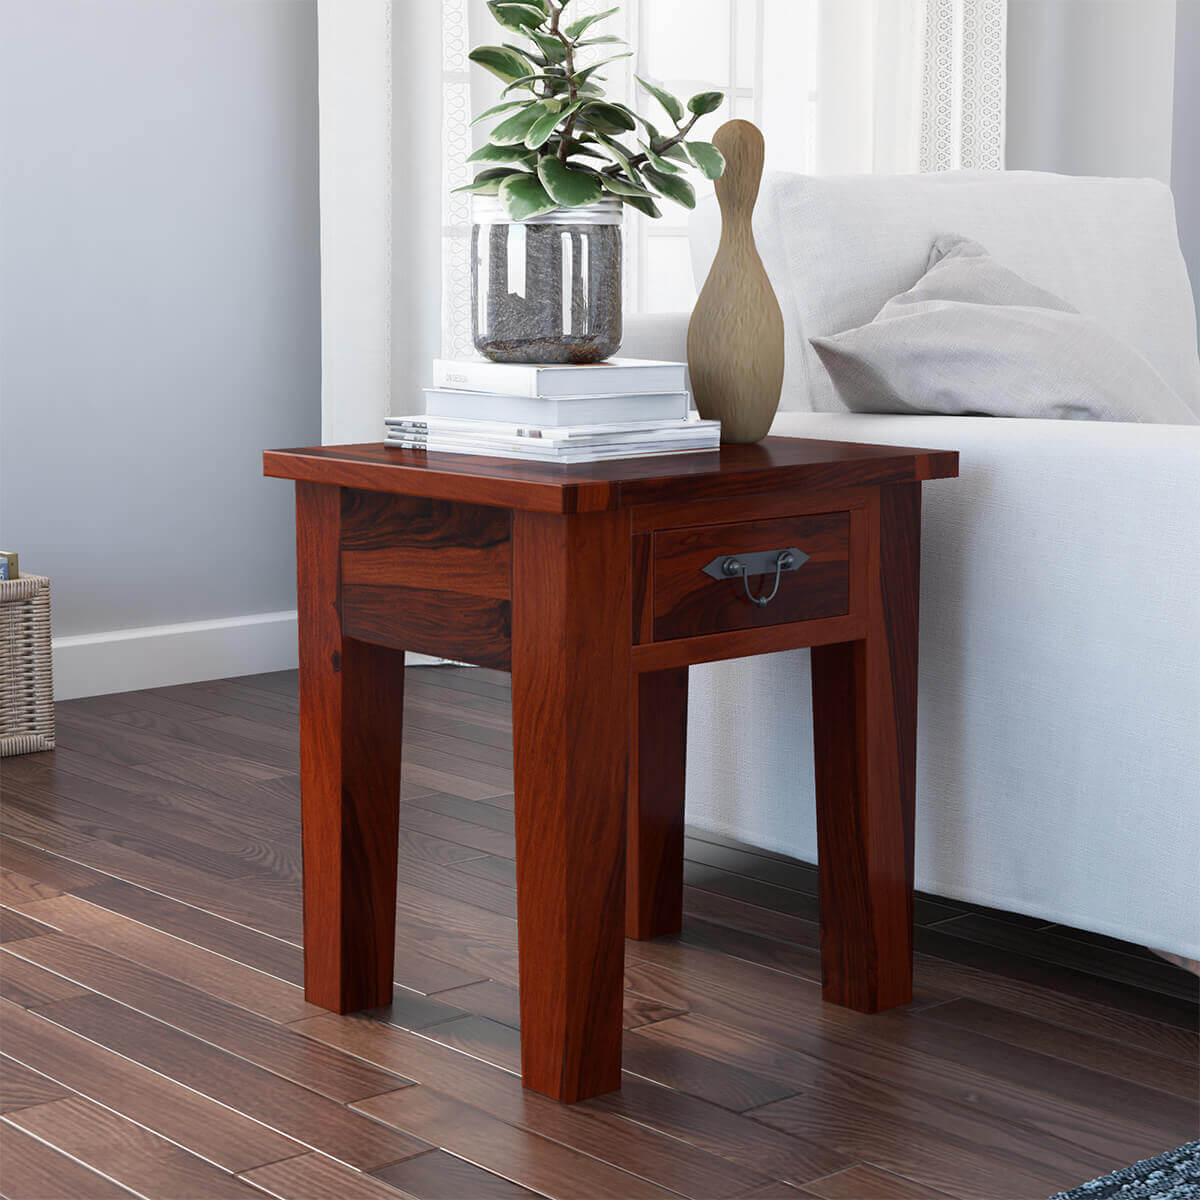 Rustic Wood End Table Tierra Rustic Solid Wood 1 Drawer End Table